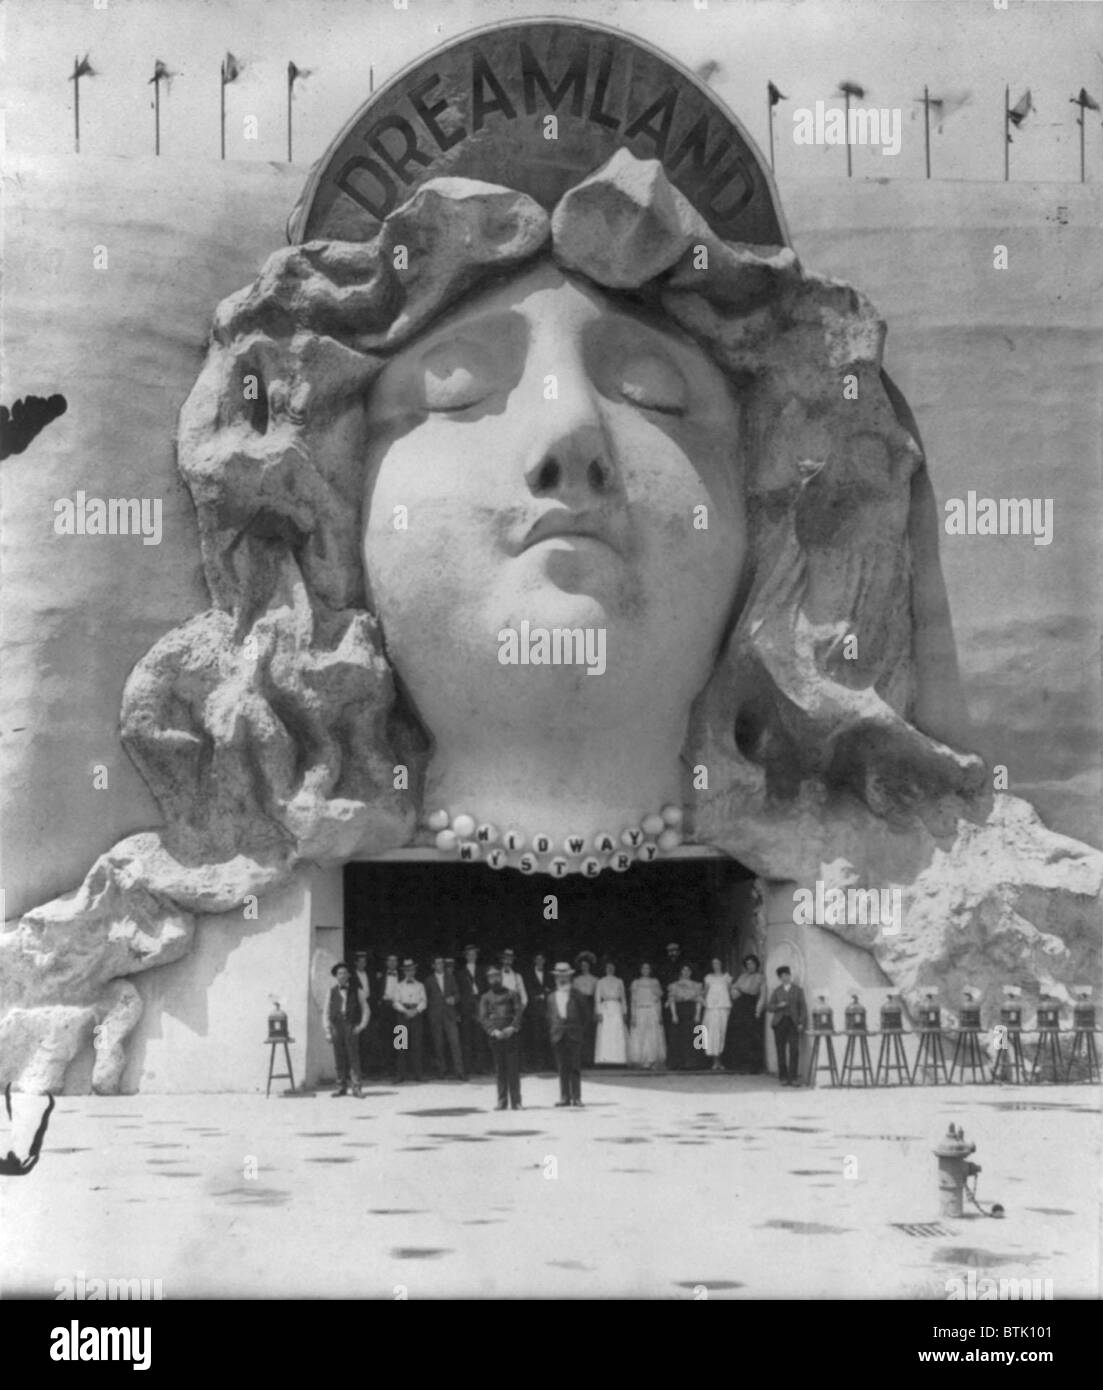 Amusement parks, 'On the Midway', group of people posed at entrance to Dreamland, decorated with bas-relief - Stock Image